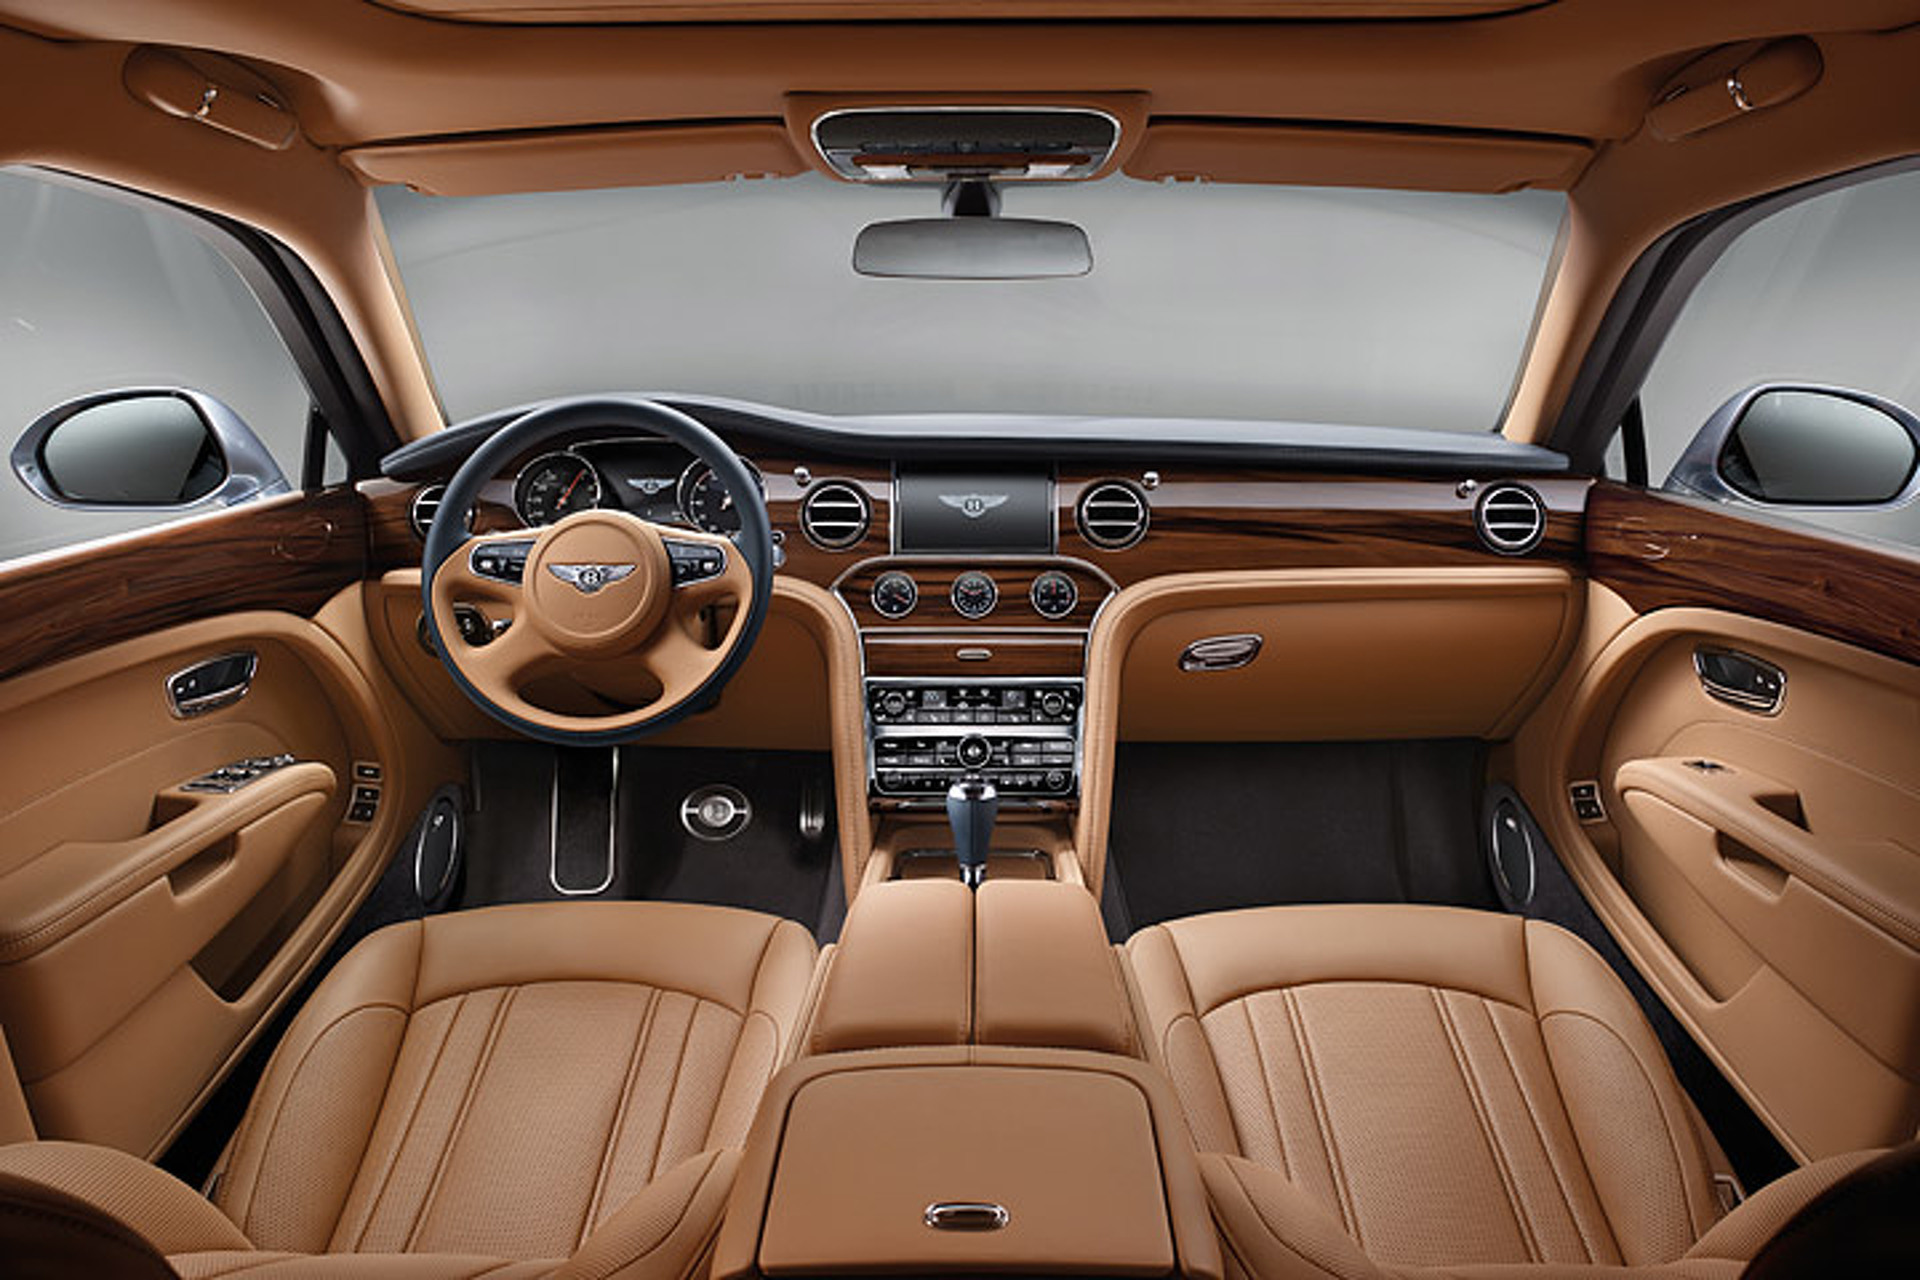 2017 Bentley Mulsanne: 5 Things to Know